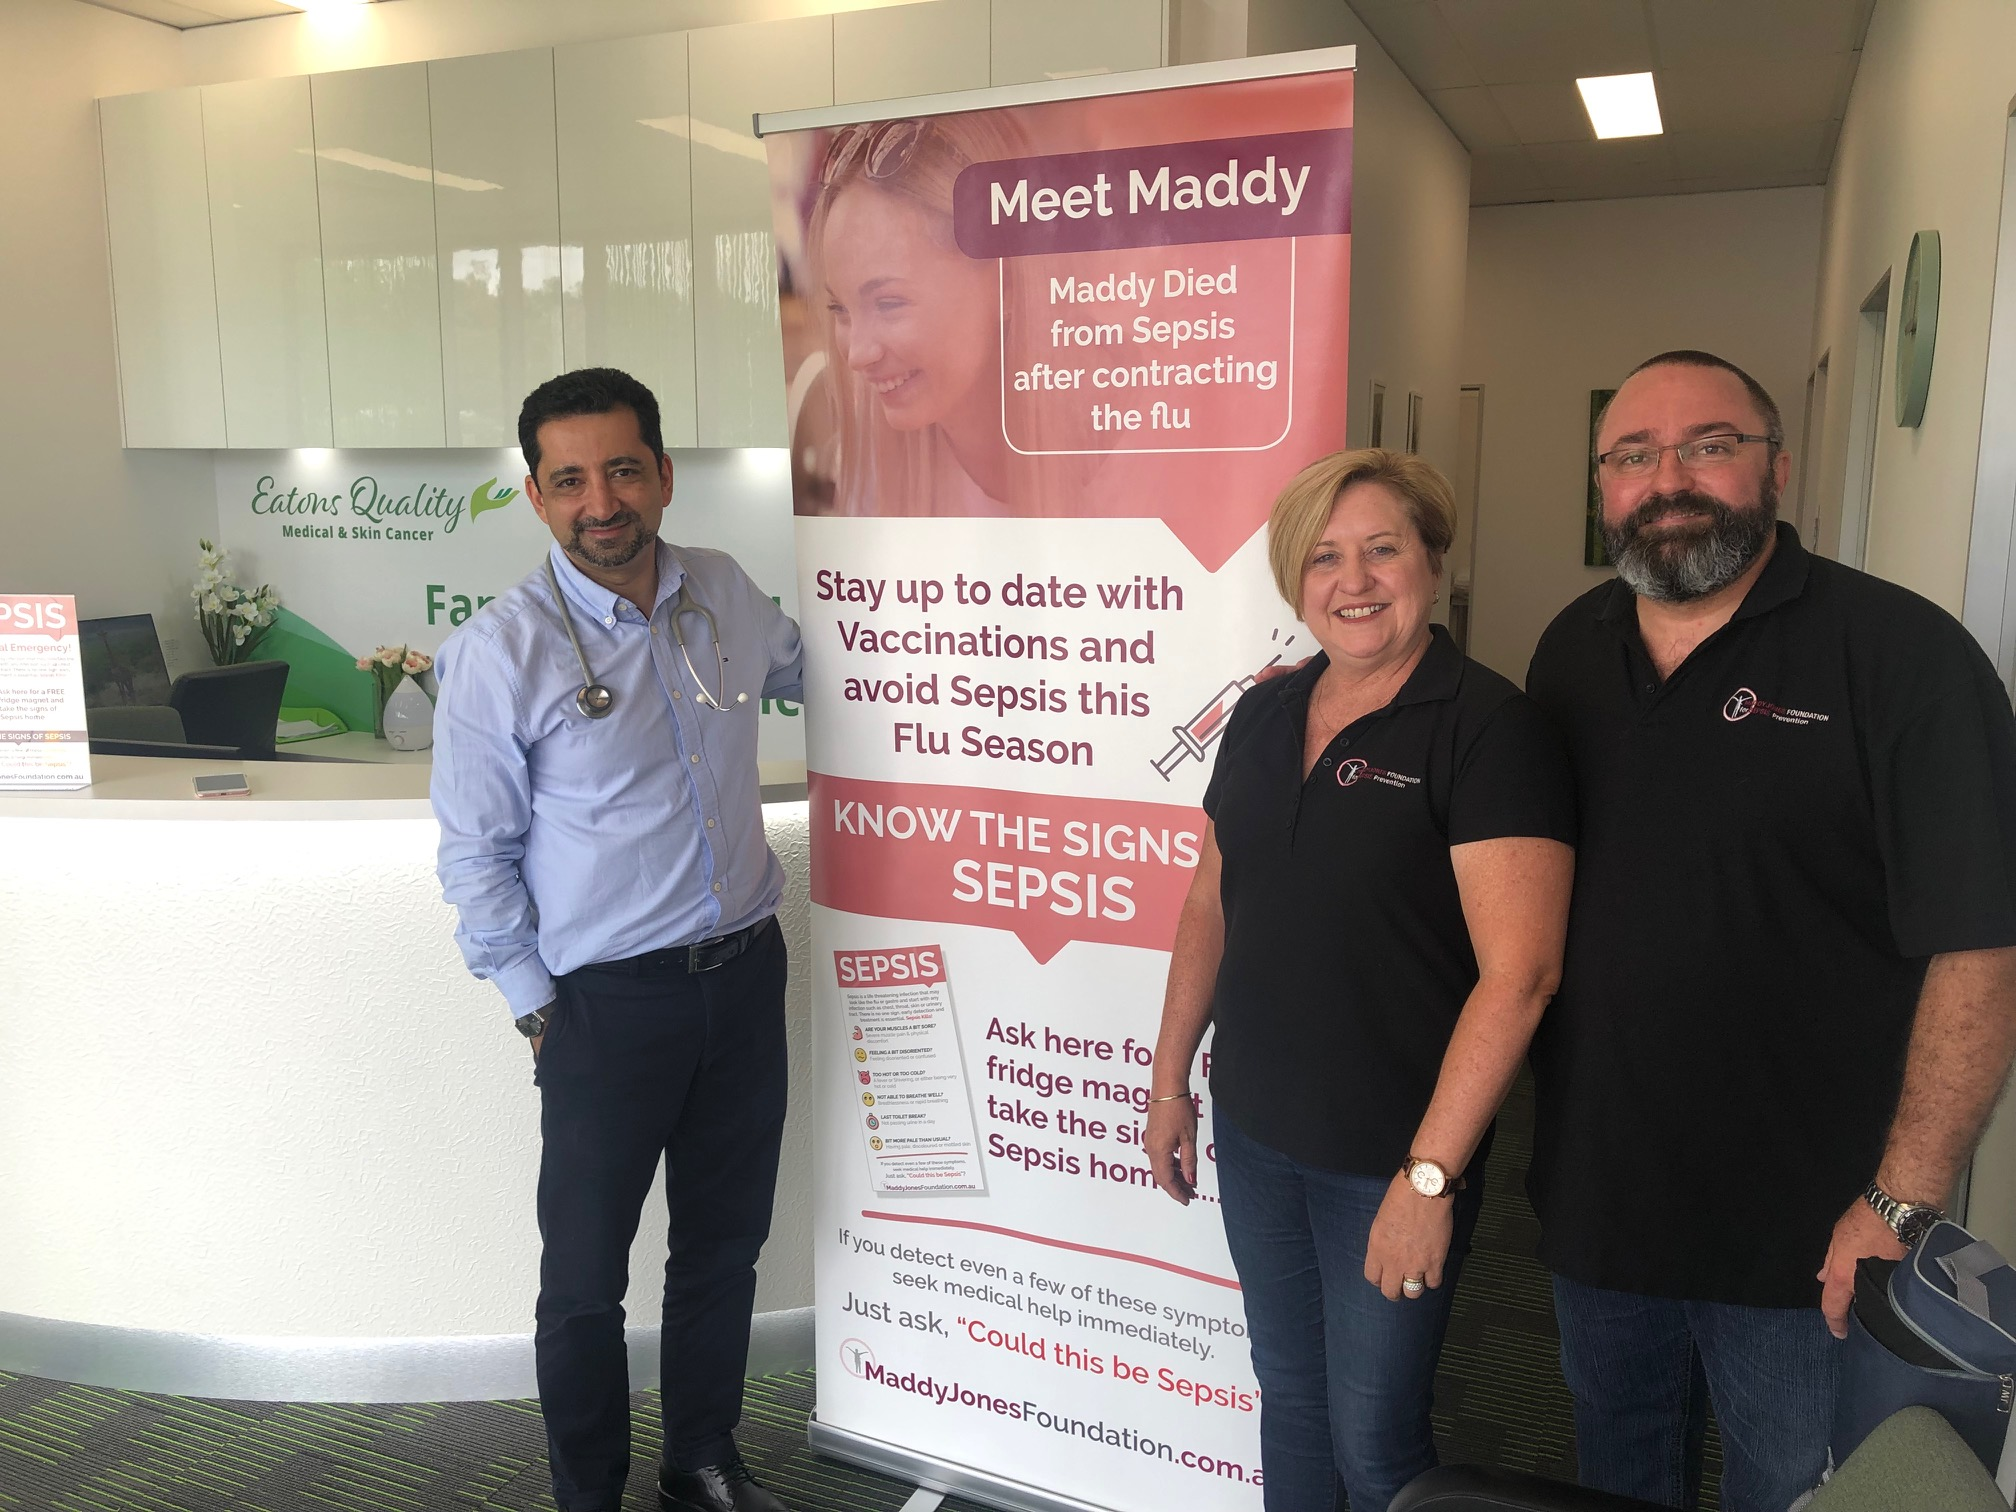 Eatons Quality Medical and Skin Cancer Centre